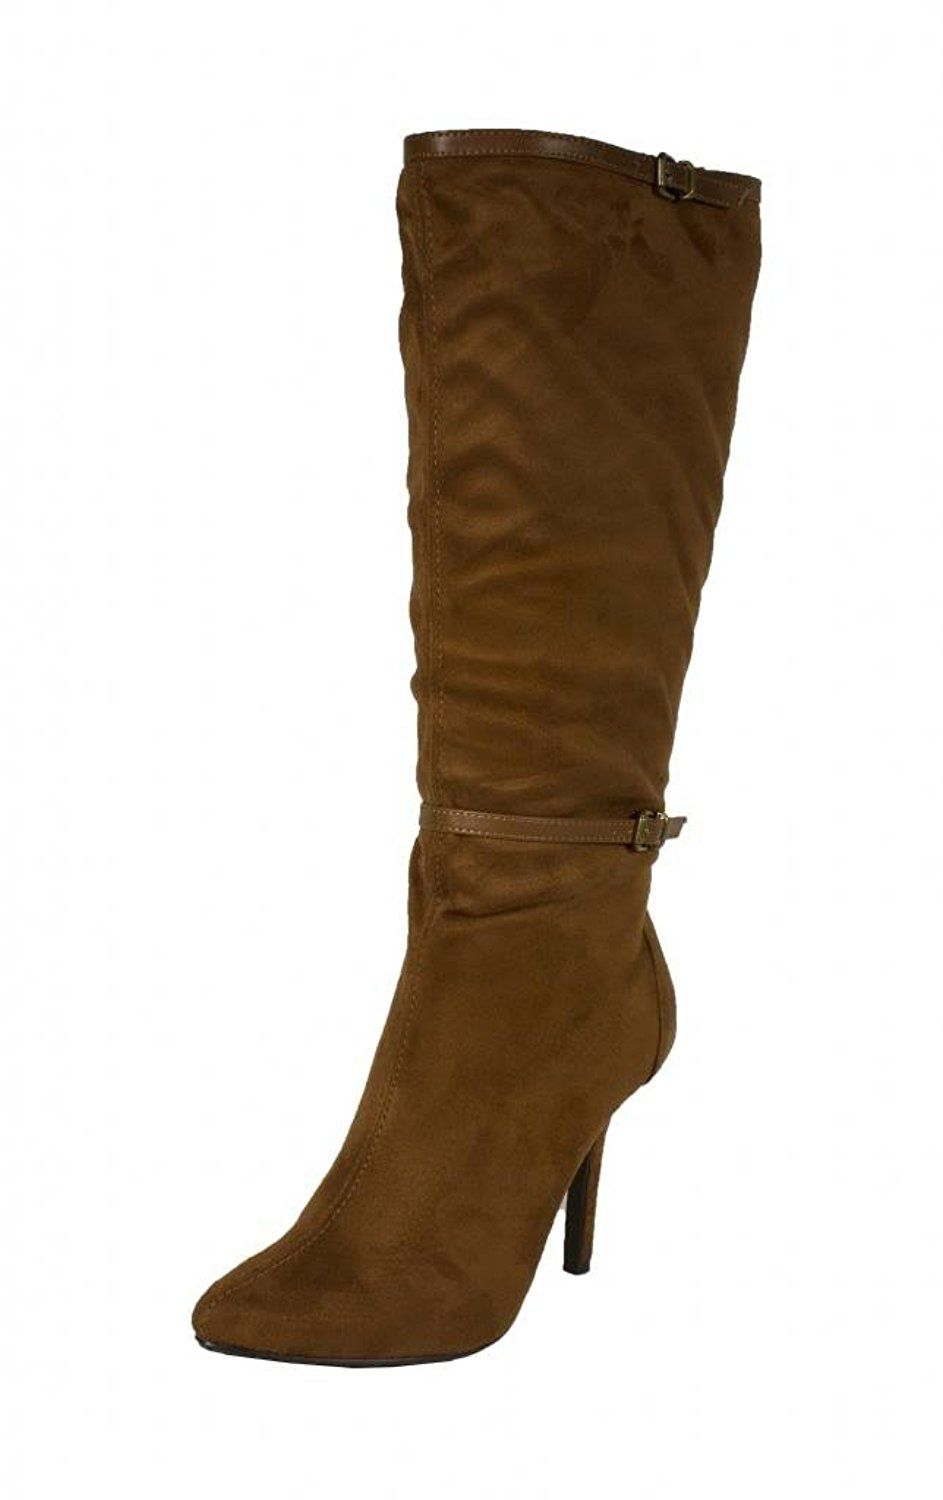 Lustacious Women's Knee High Pointy Toe Slim Belted Ankle Strap Stiletto Boots with Inside Zipper